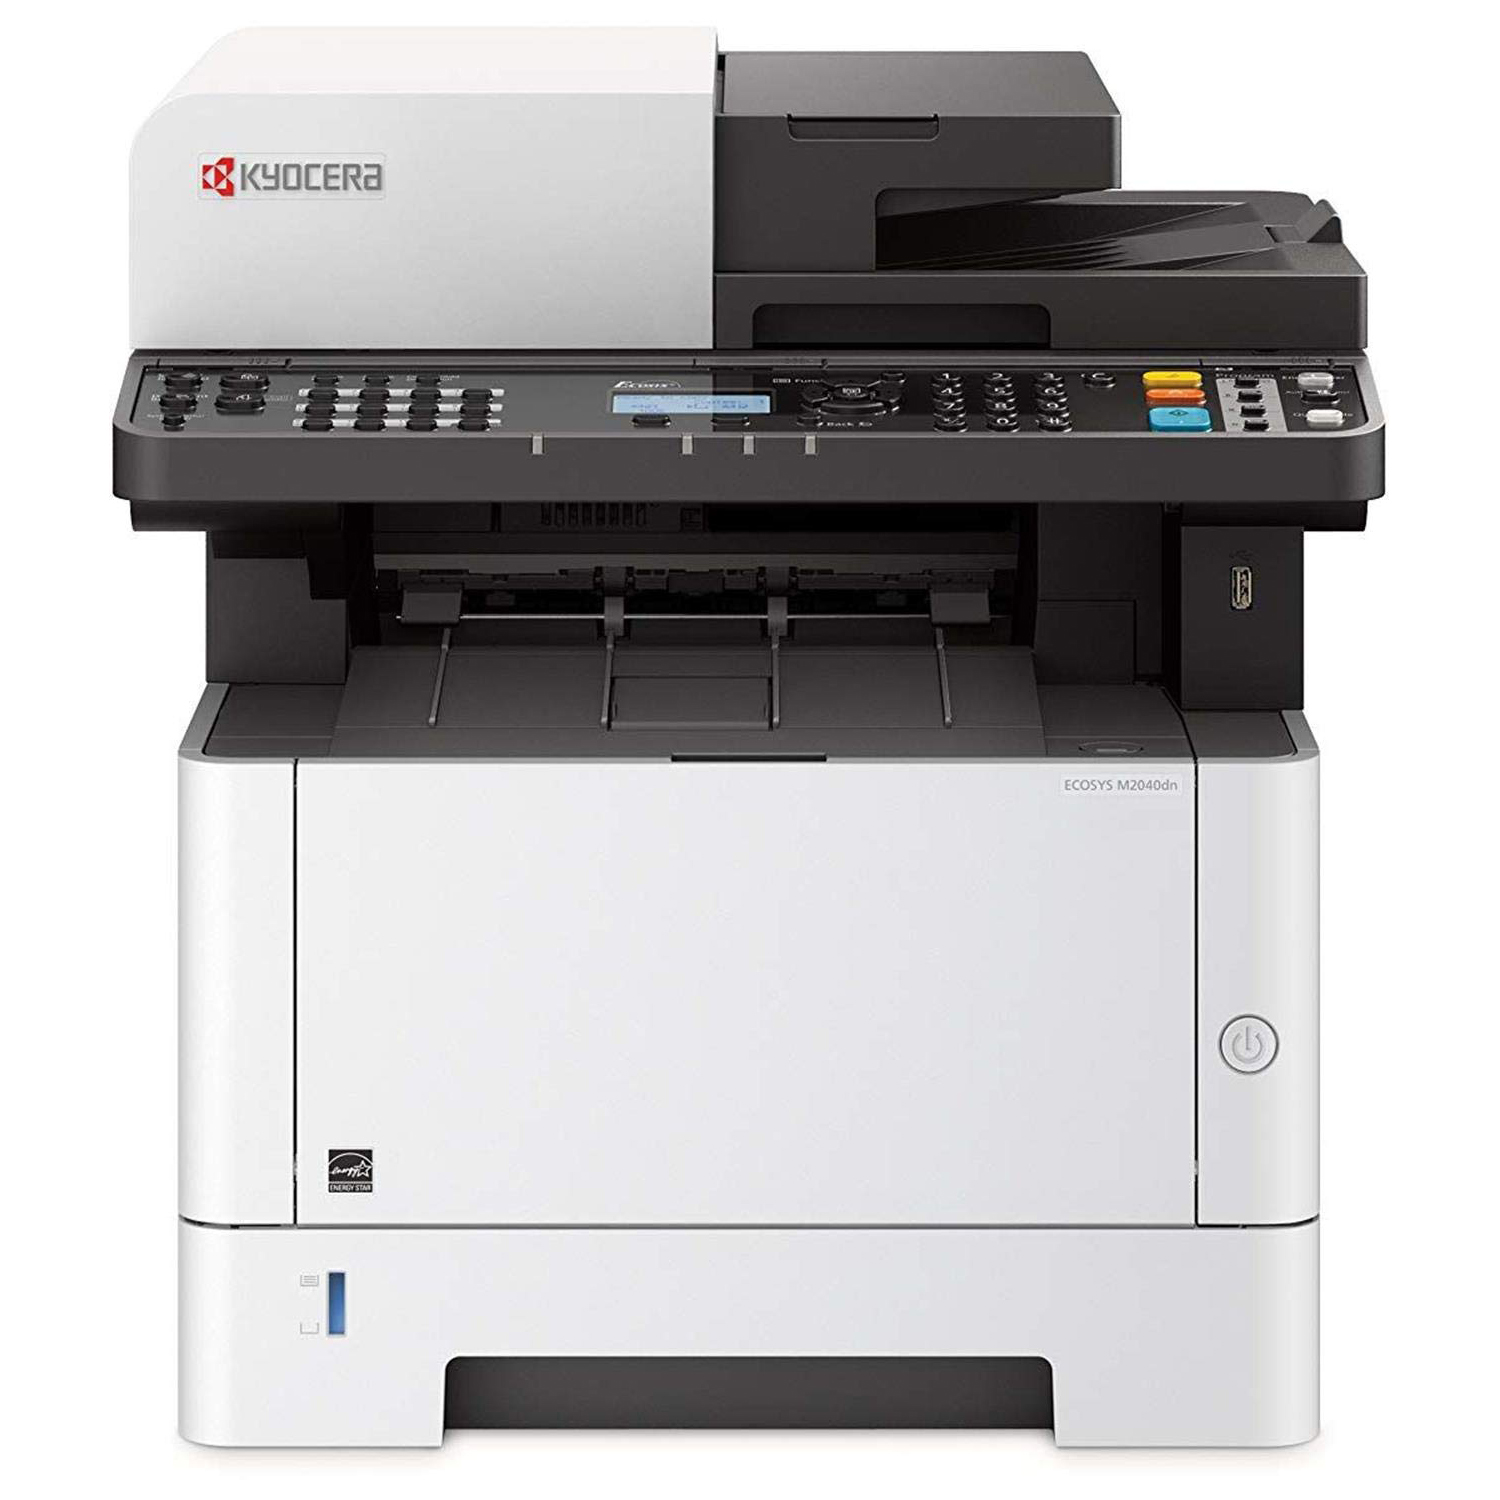 Kyocera ECOSYS M2040dn All-In-One Monochrome Laser Printer ...